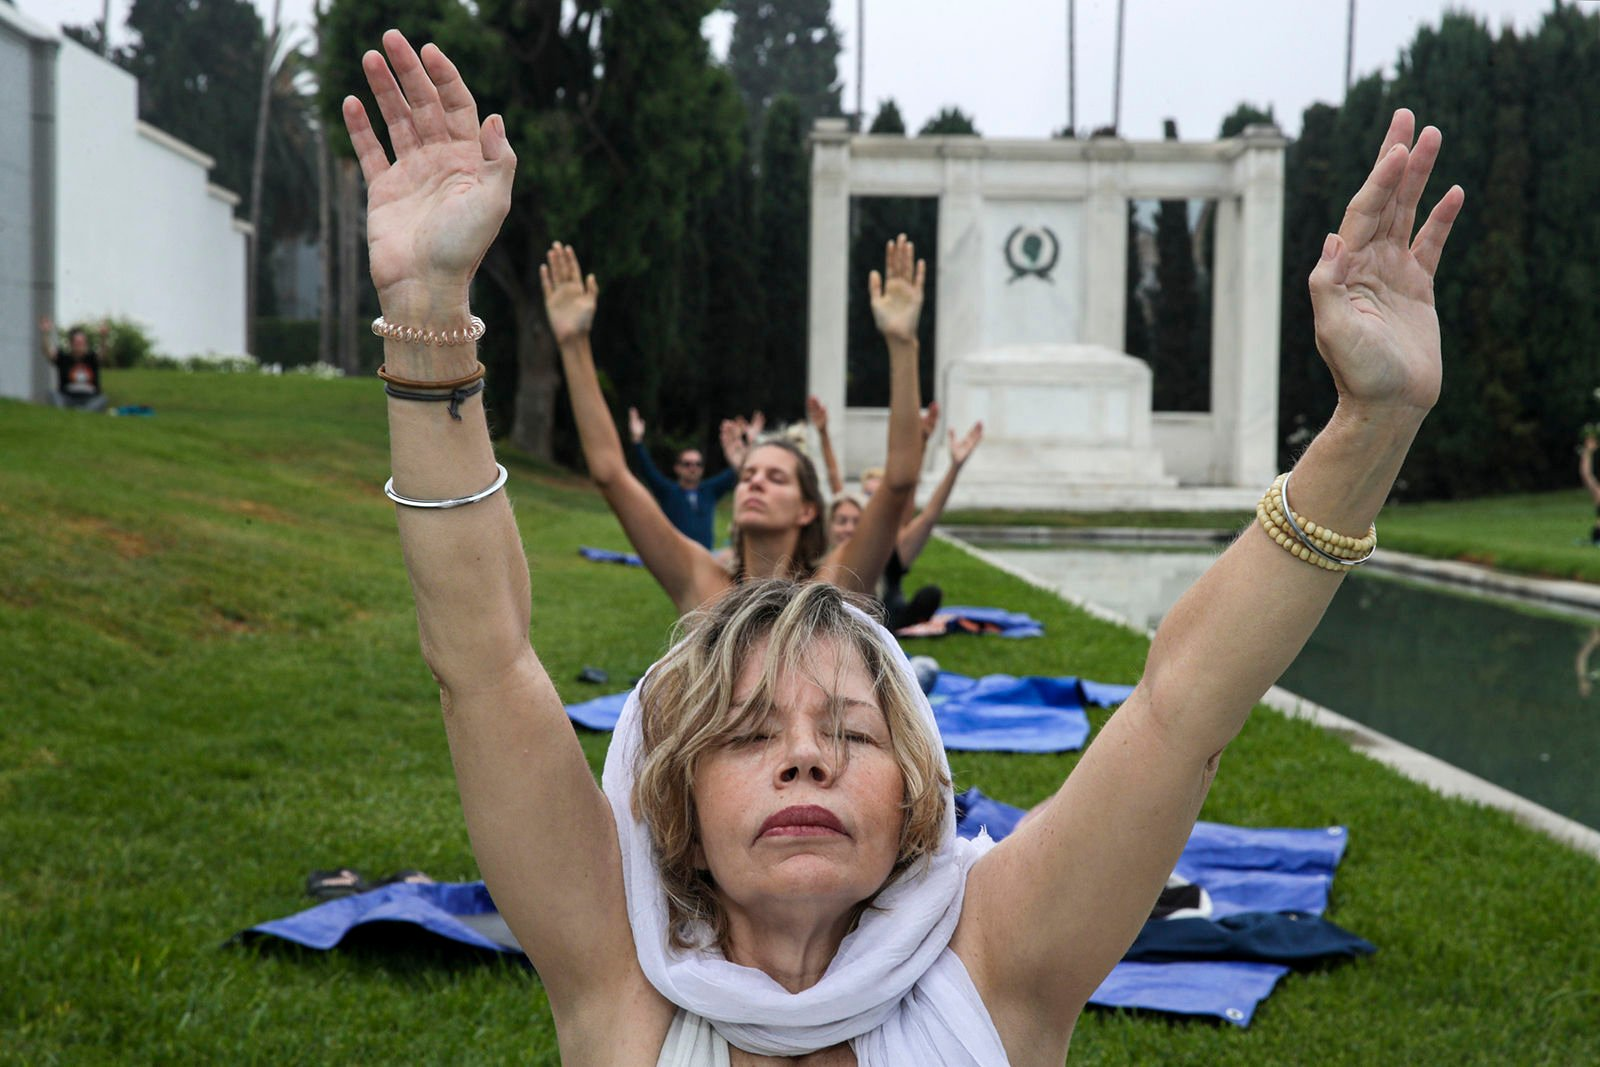 fredericknewspost.com - Jon Healey Los Angeles Times - Expanding the consciousness among the dead: Hypno-yoga at Hollywood cemetery